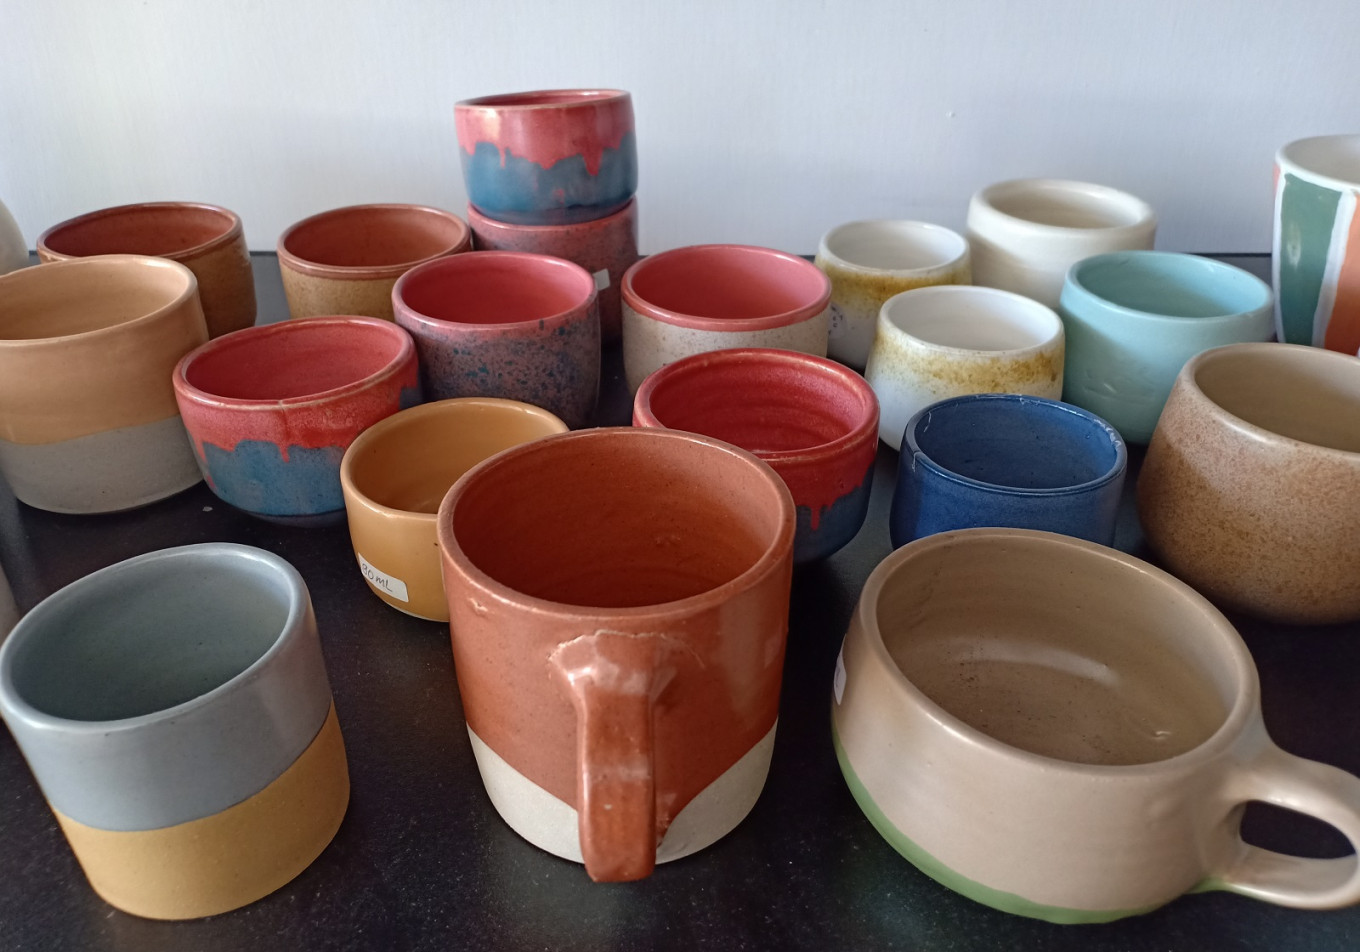 Kaloka Pottery: Learning life lessons from ceramic making